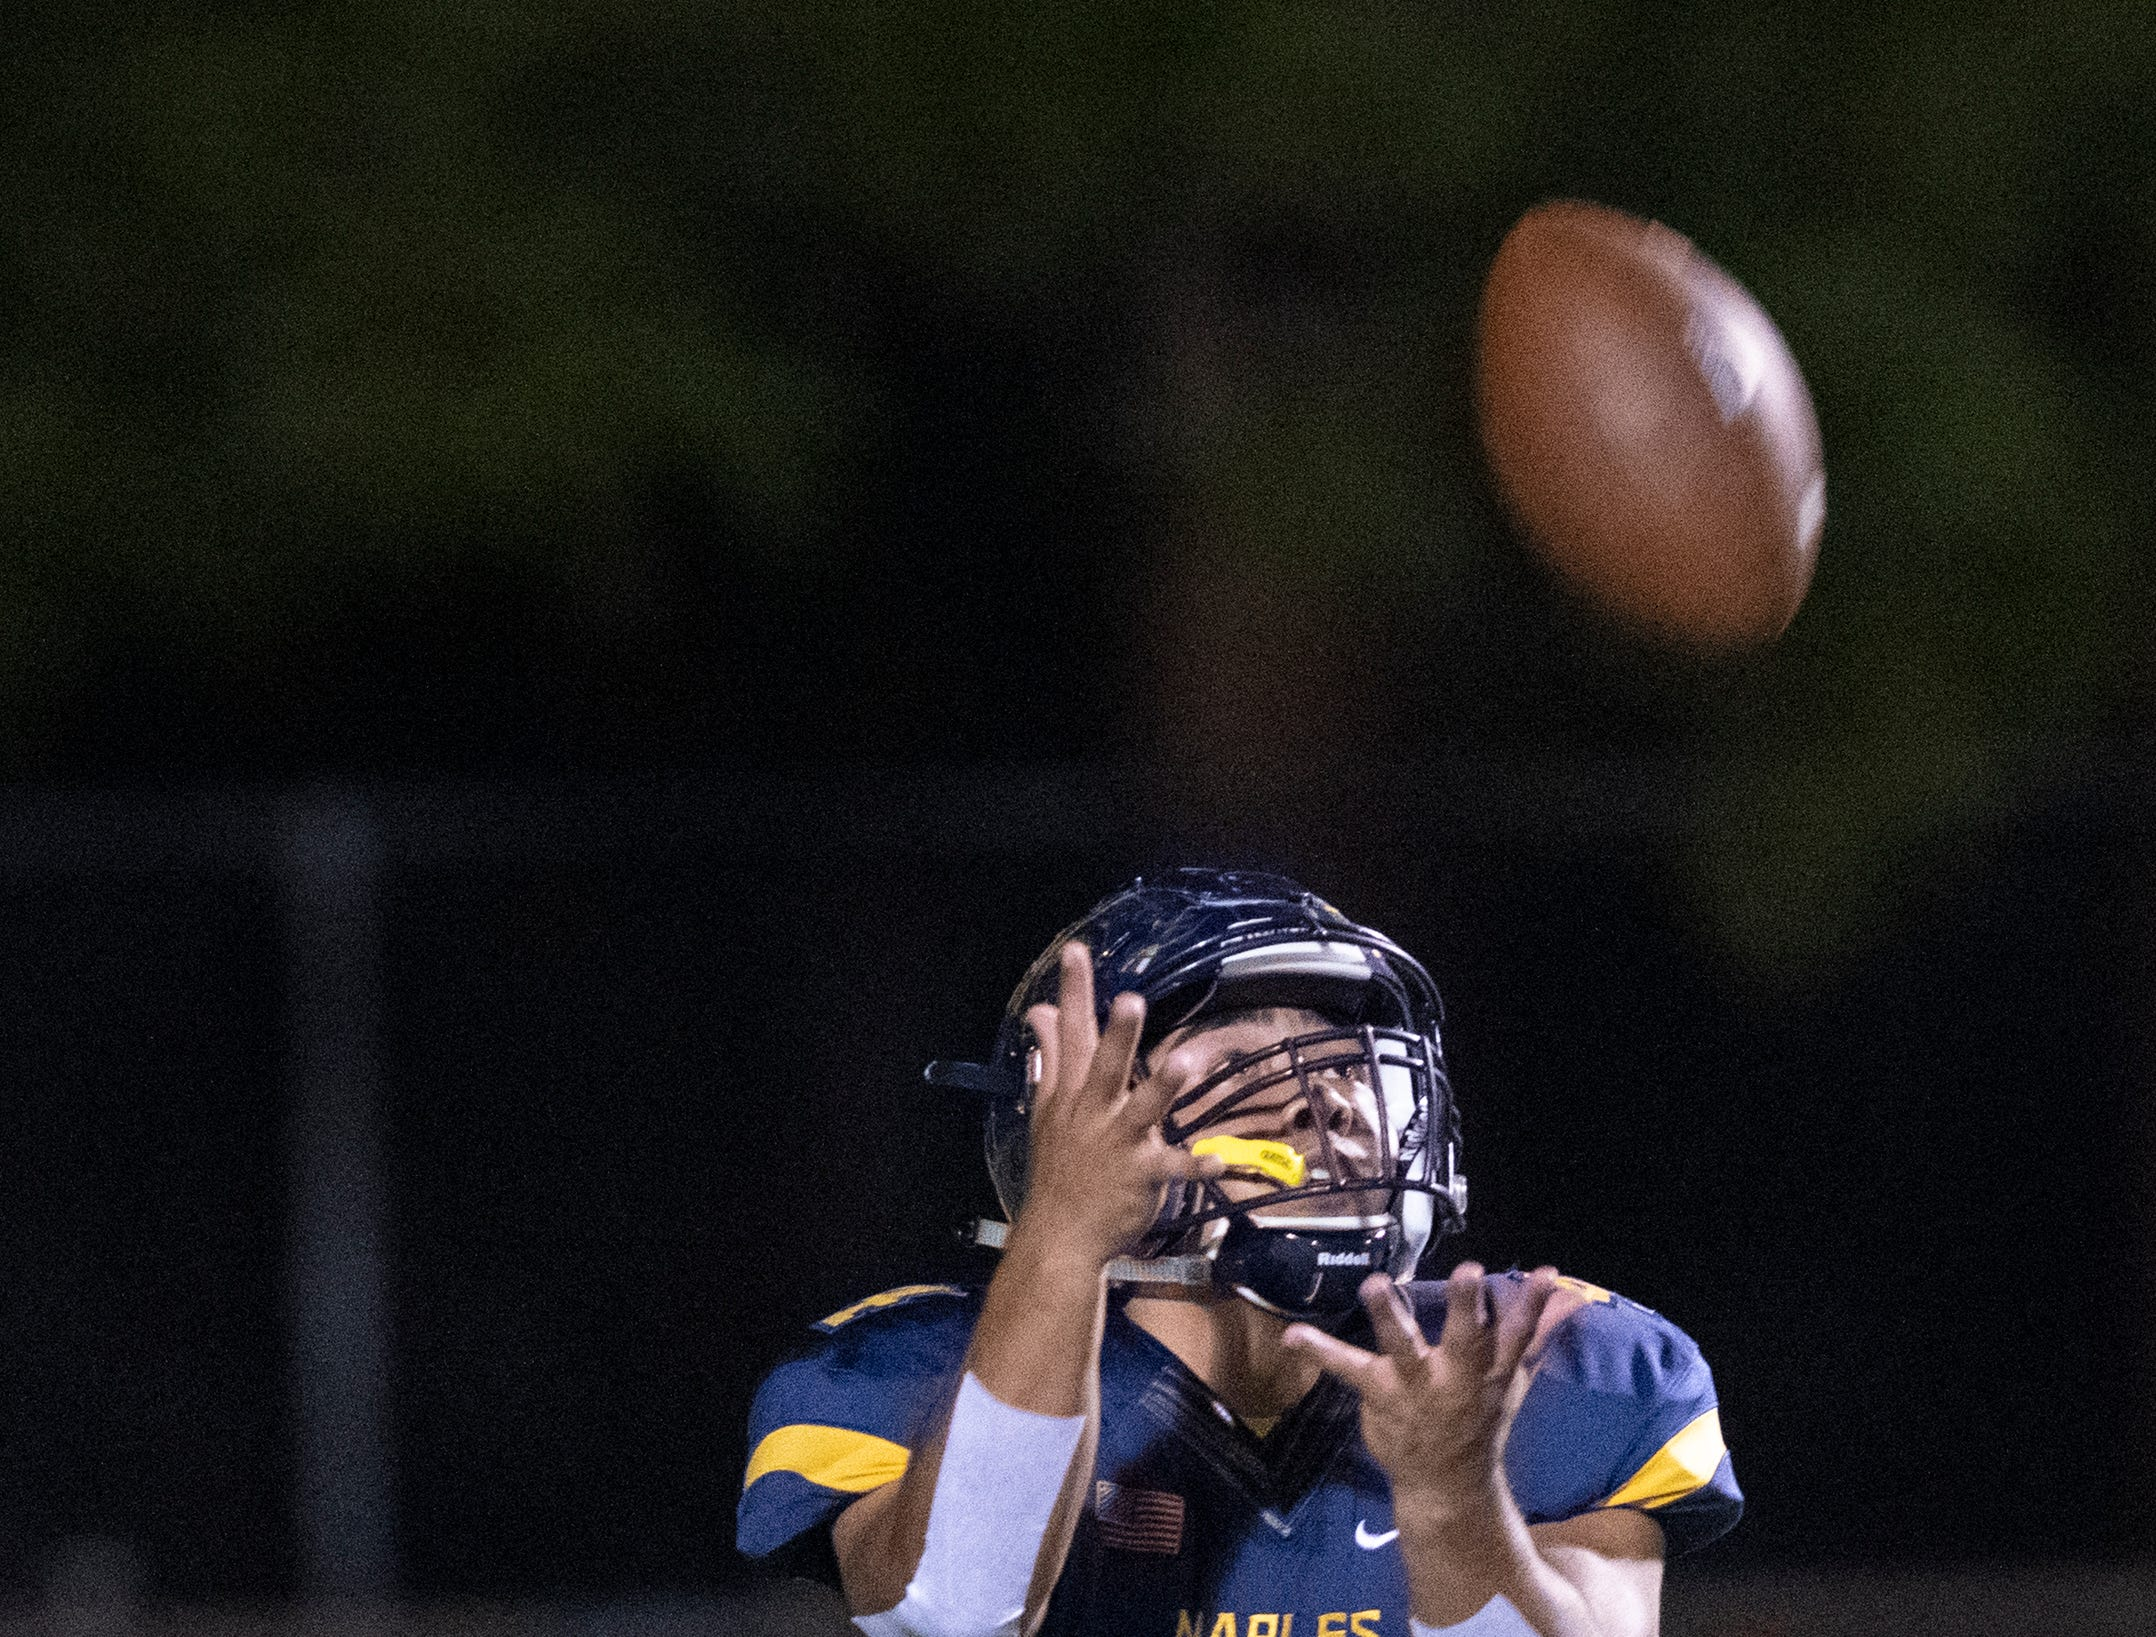 Elan Sommala of Naples catches a Lehigh punt during the Class 6A regional quarterfinal playoff game at Naples High on Friday night, November 9, 2018.